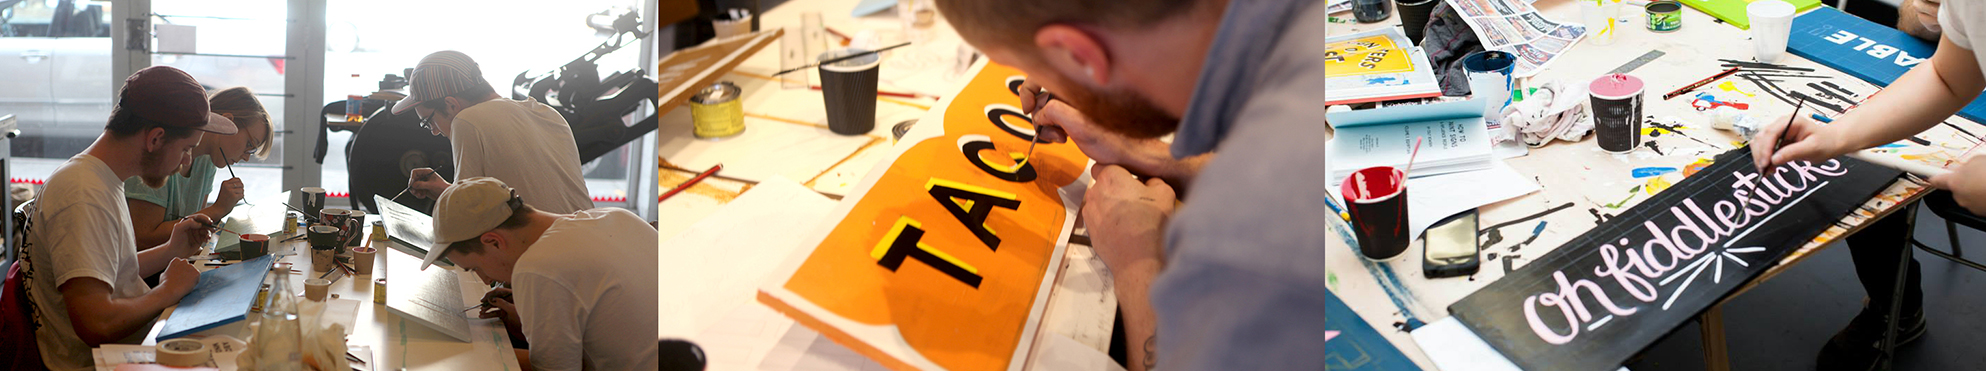 Pocket Design - Signwriting Workshops